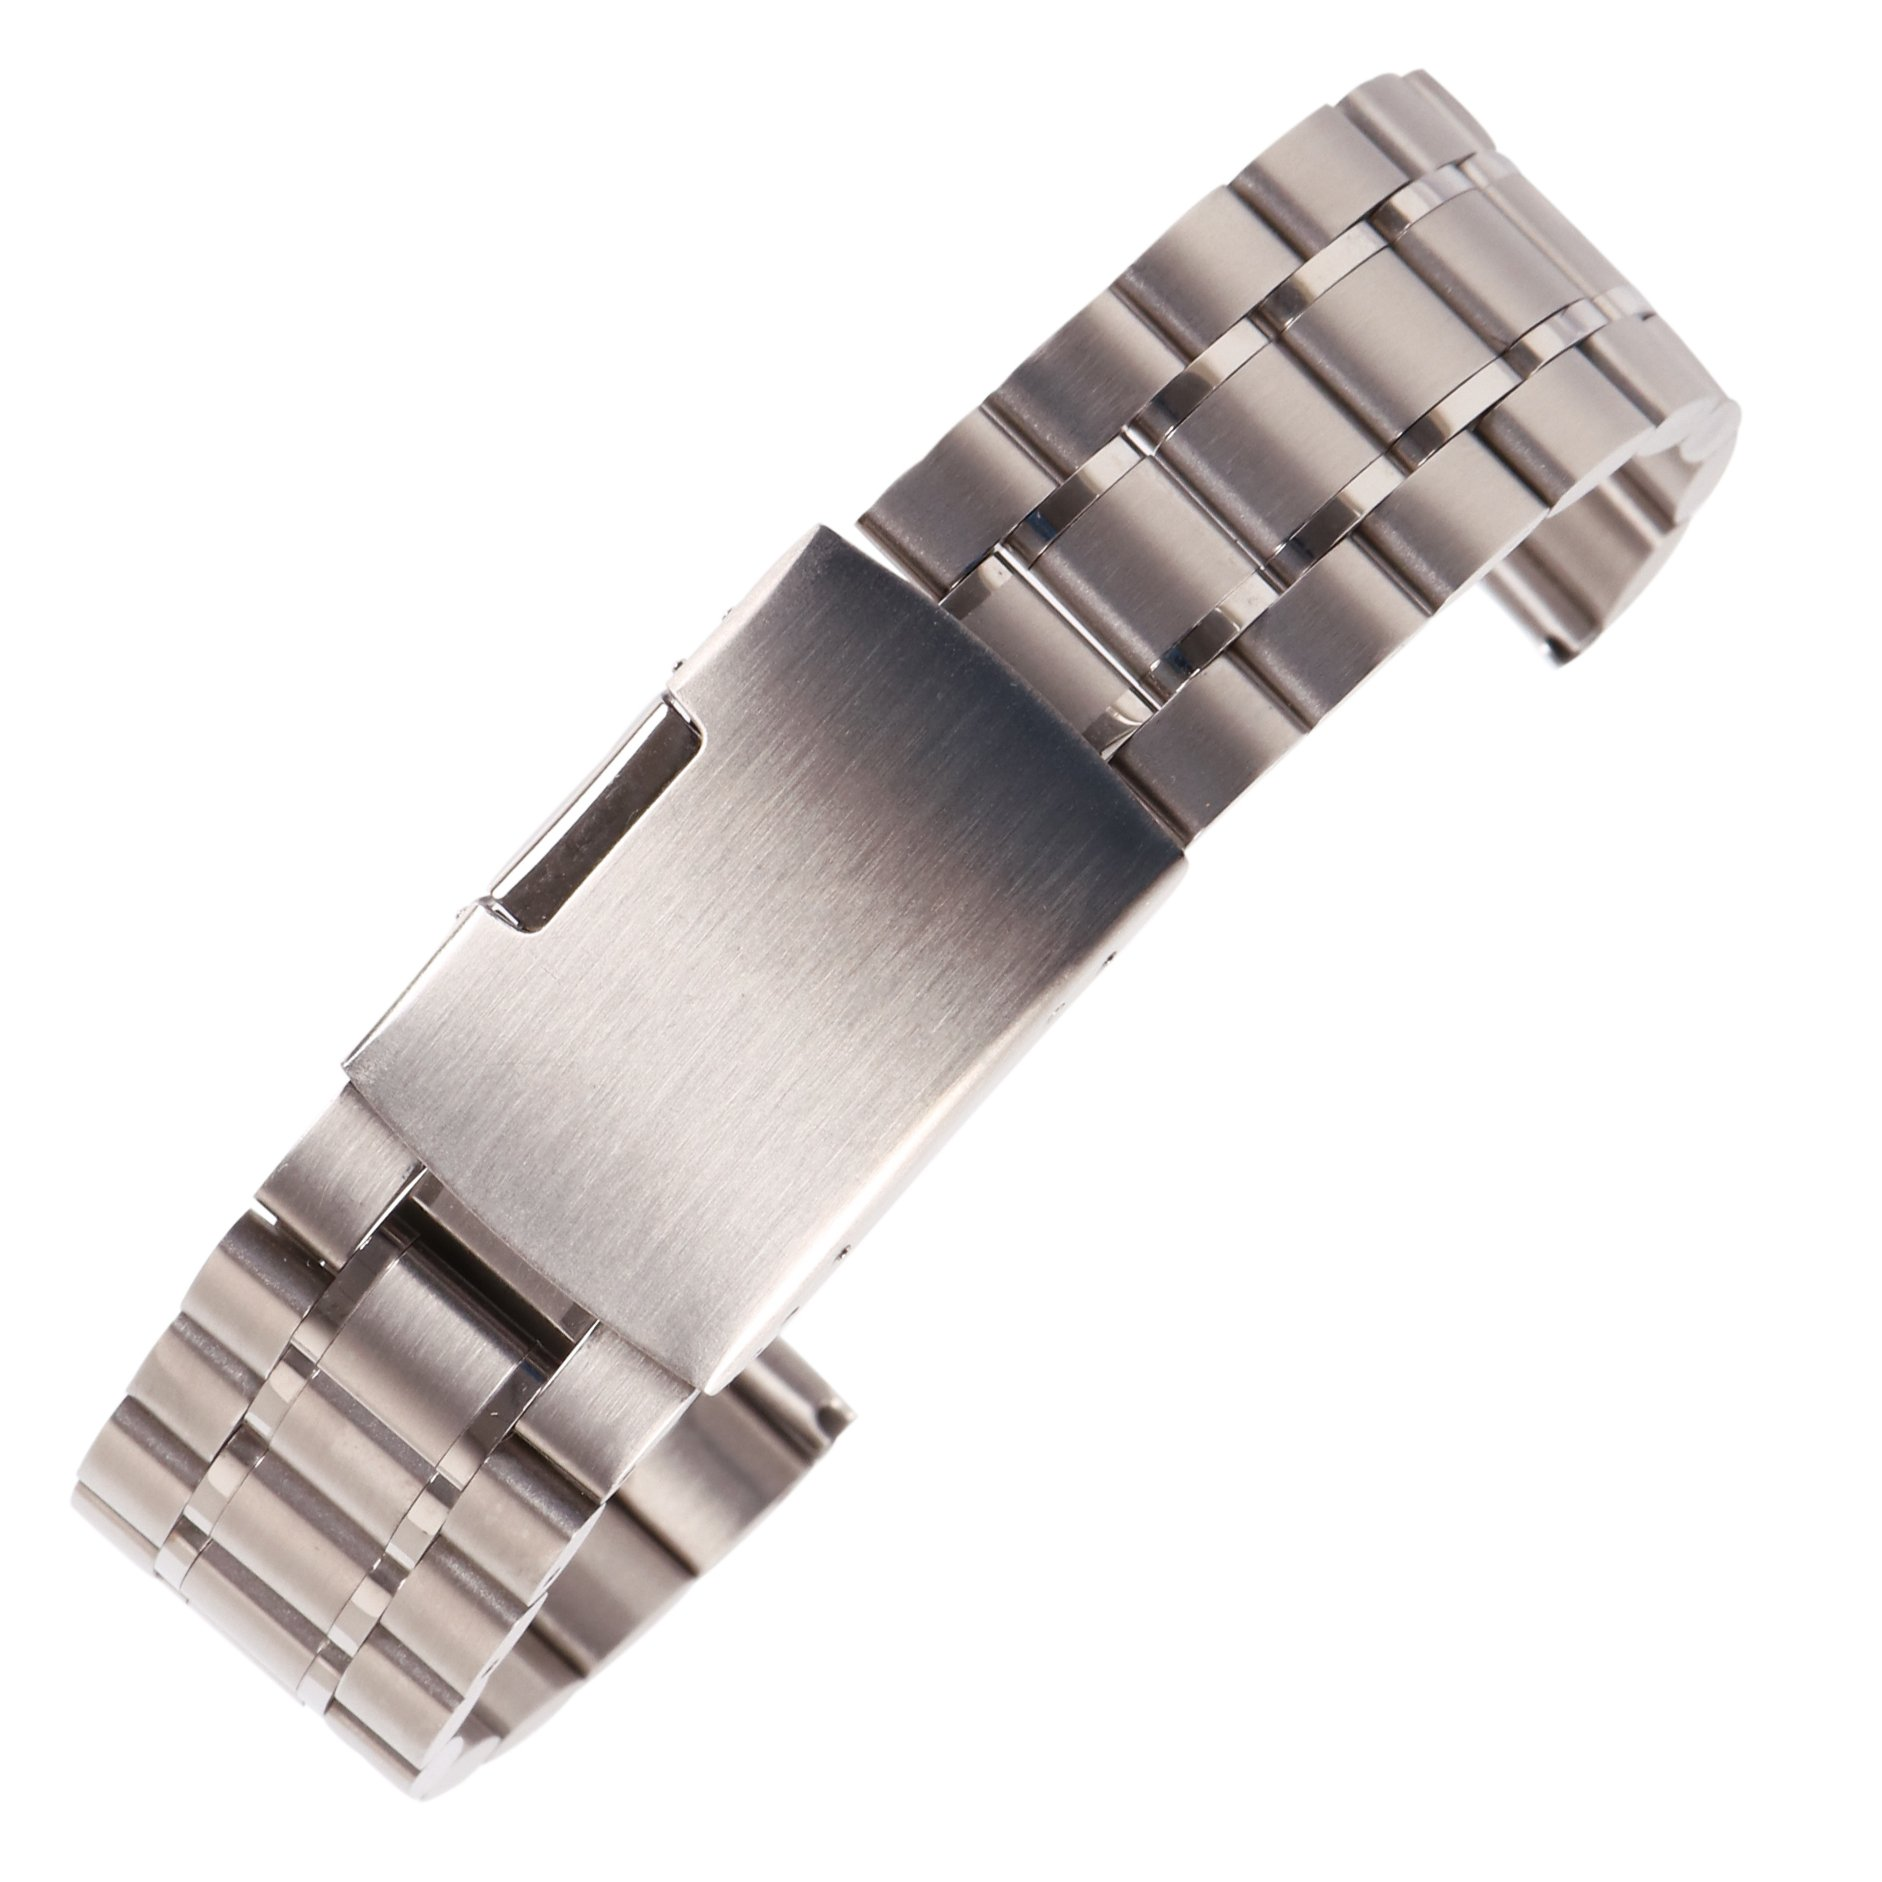 23mm Anti Allergic SS Watch Strap Wristband for Men Silver Solid INOX Steel Brushed Finish Straight End